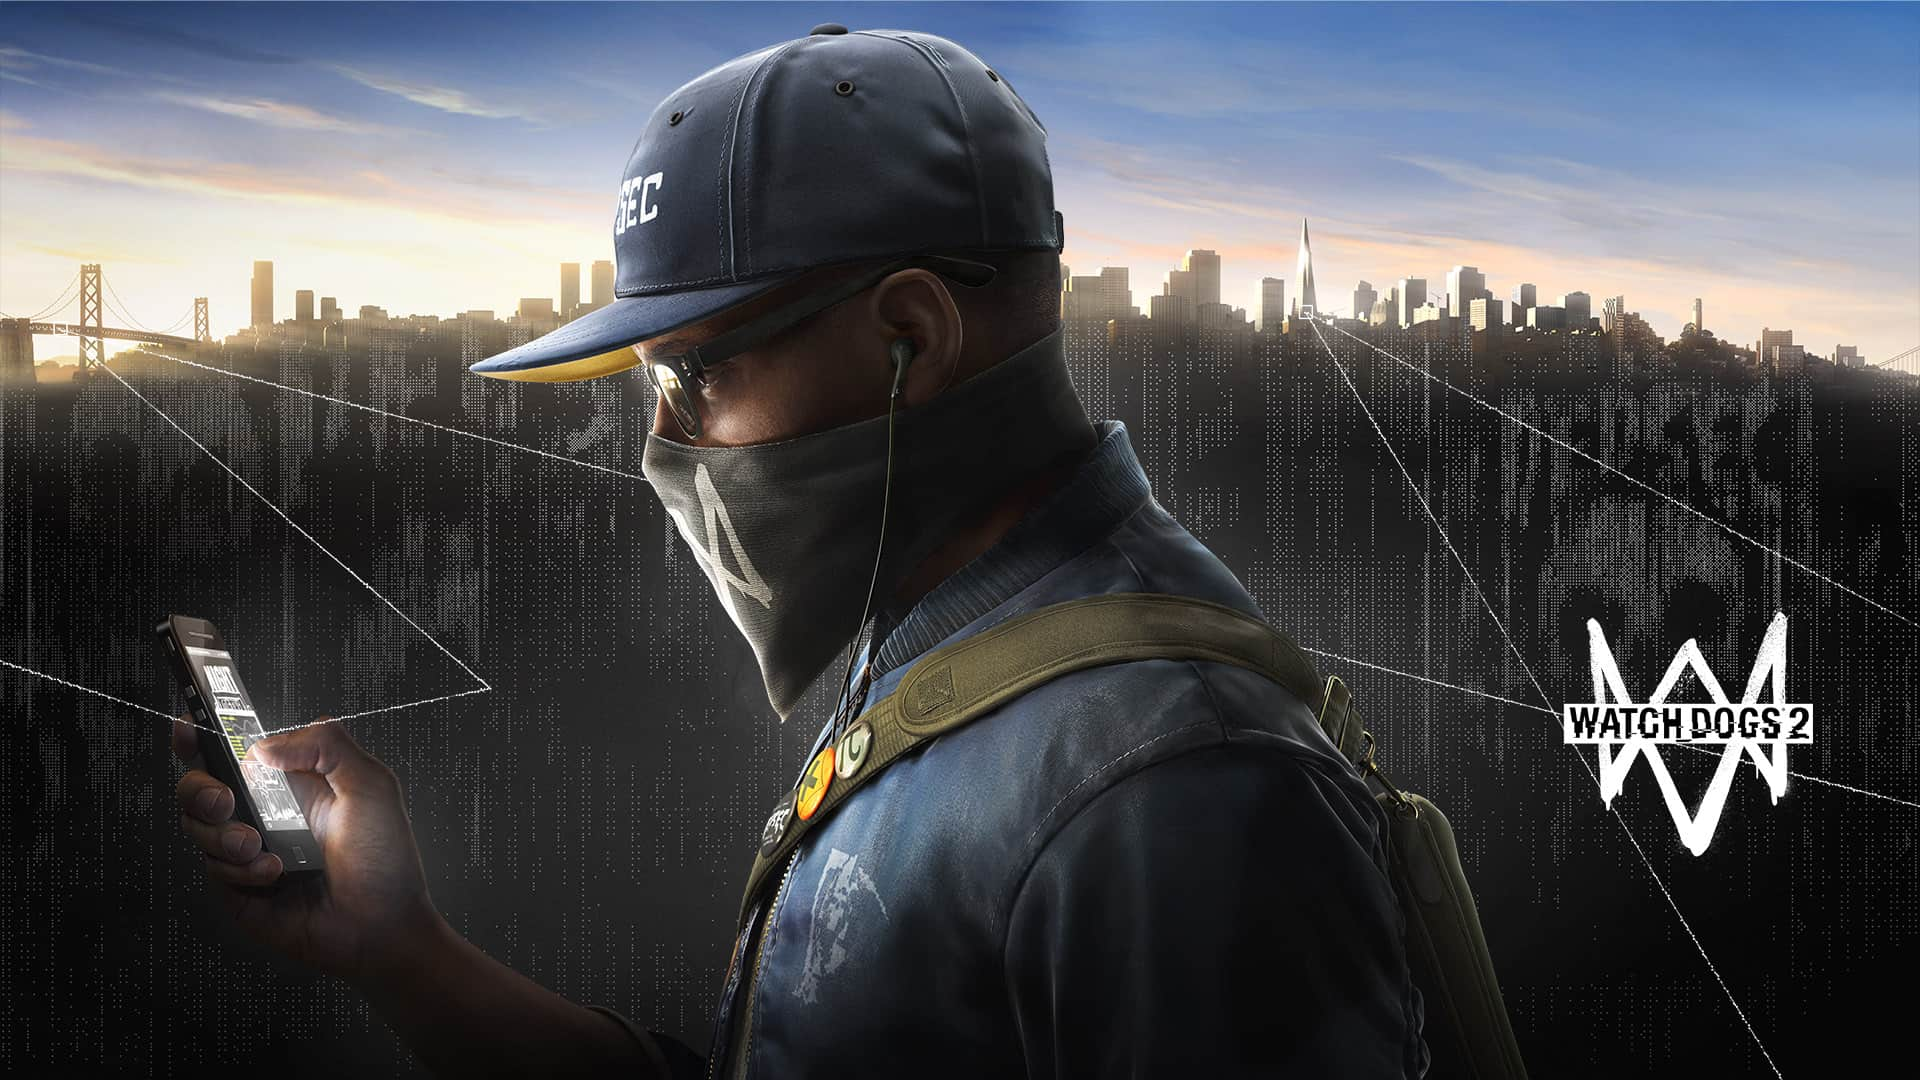 Watch Dogs 2 immagine in evidenza